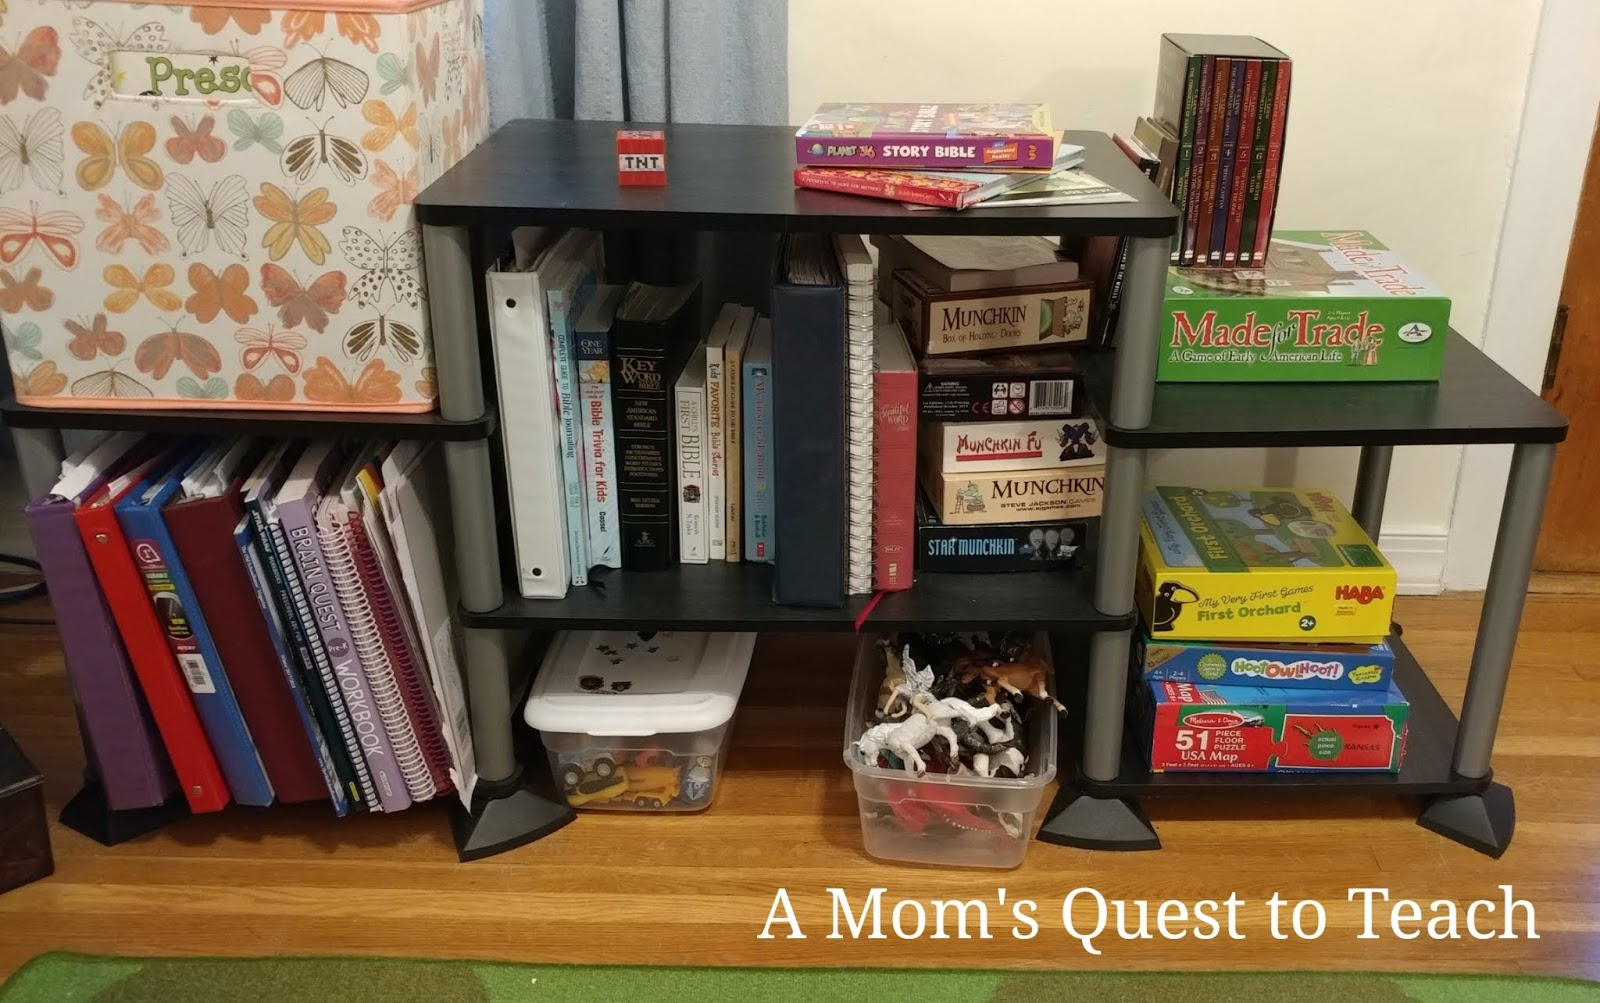 A Mom's Quest to Teach: Top 5 Suggestions for Best